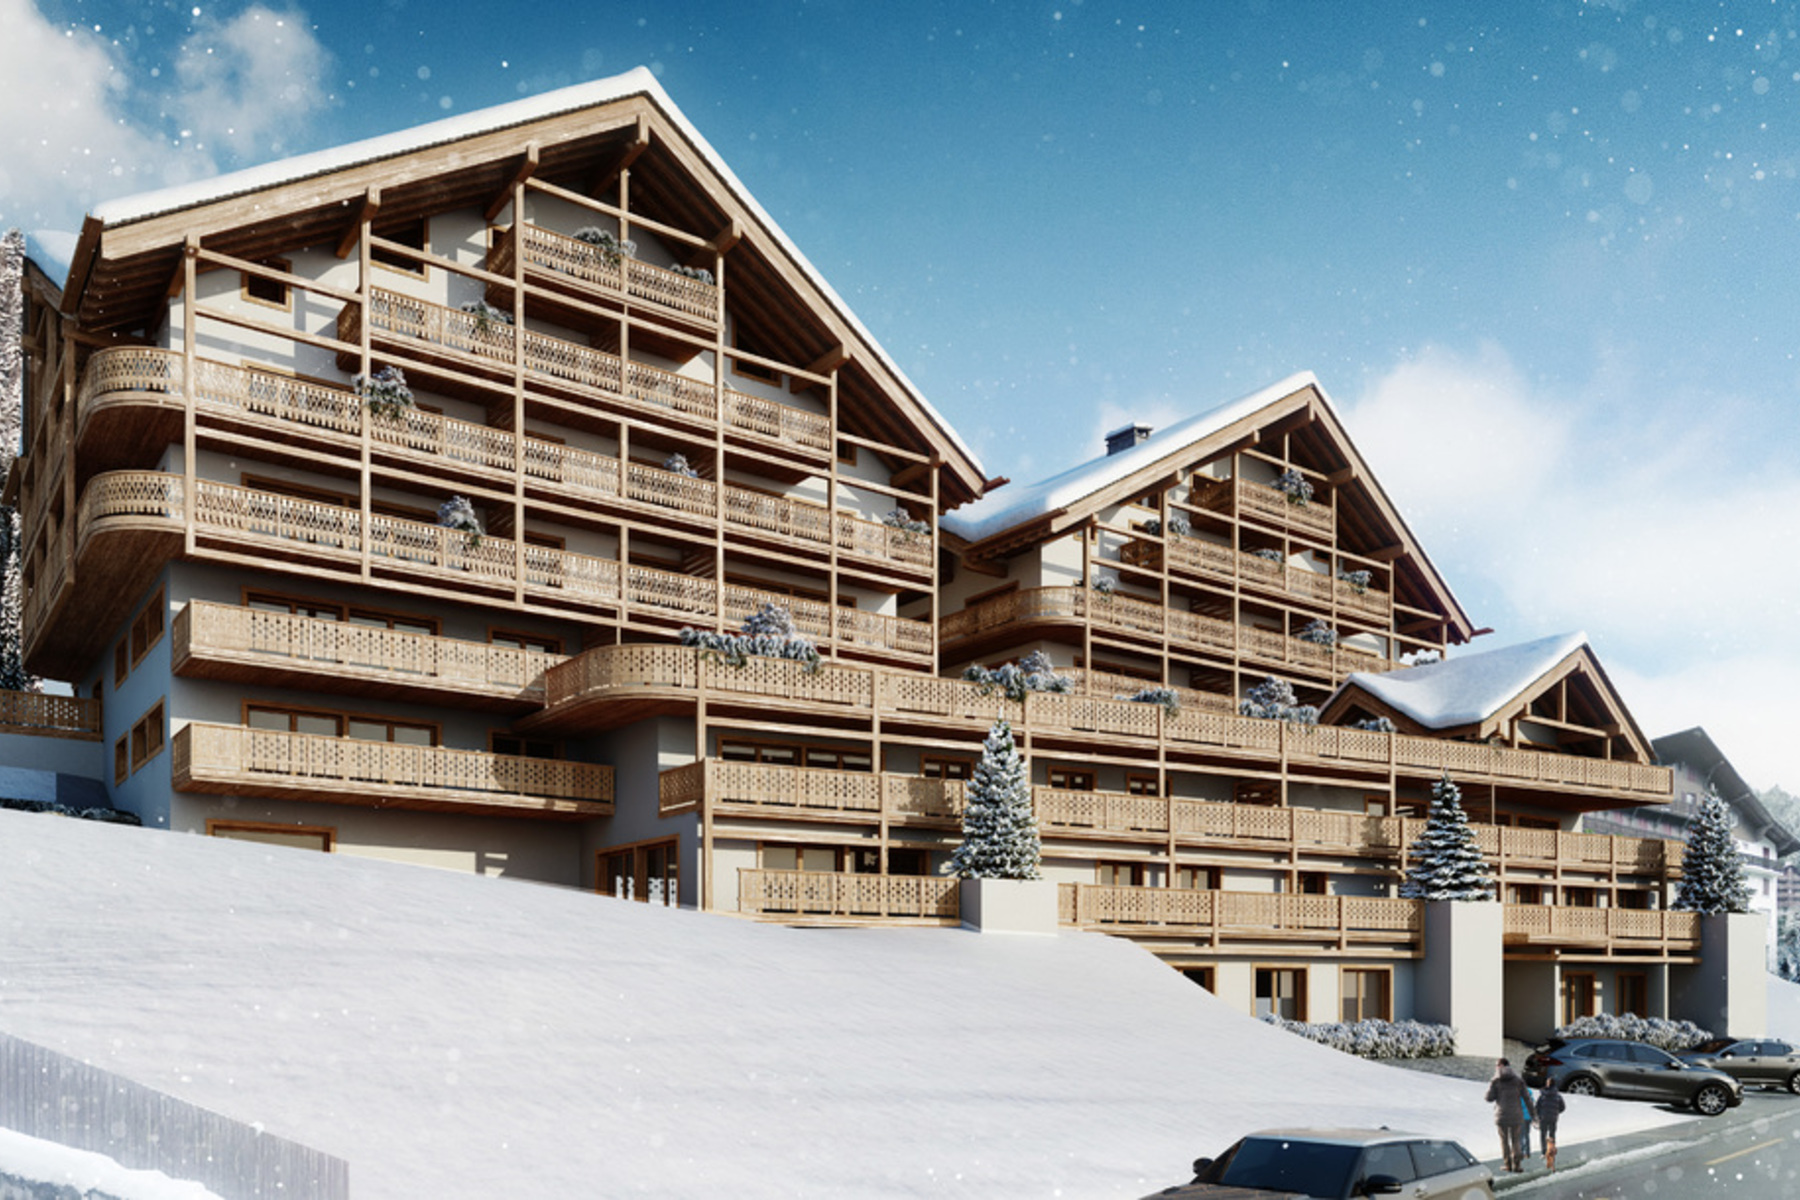 公寓 為 出售 在 Résidence Le Montagnier - Luxury apartment right by the ski slopes Champéry Champery, 瓦萊州, 1874 瑞士